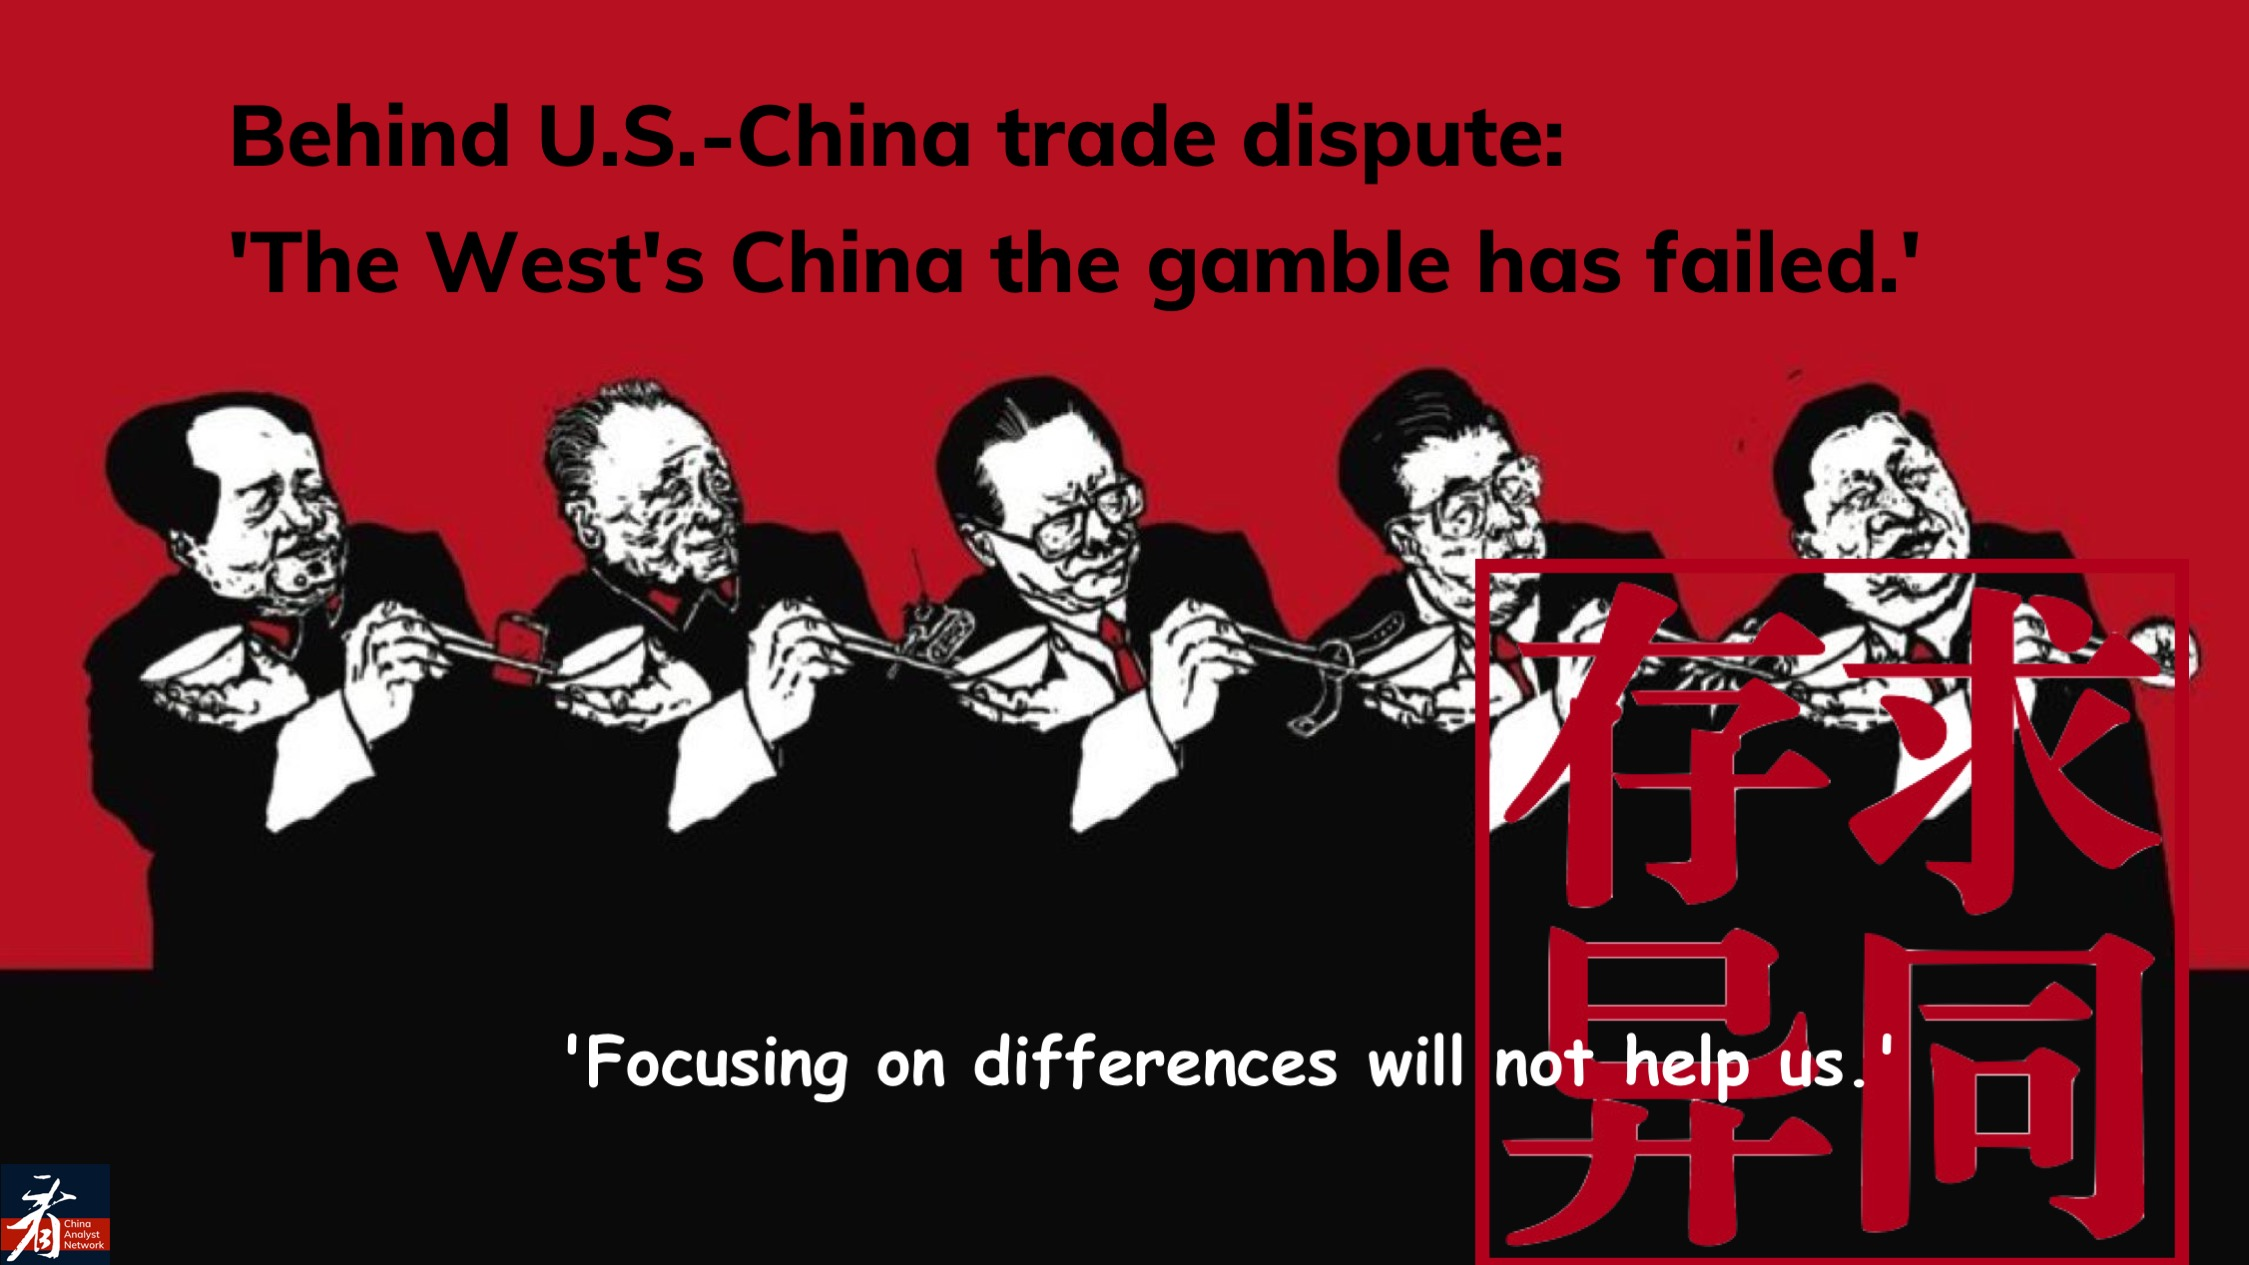 Behind the U.S.-China trade dispute:  'The West's China gamble has failed.'